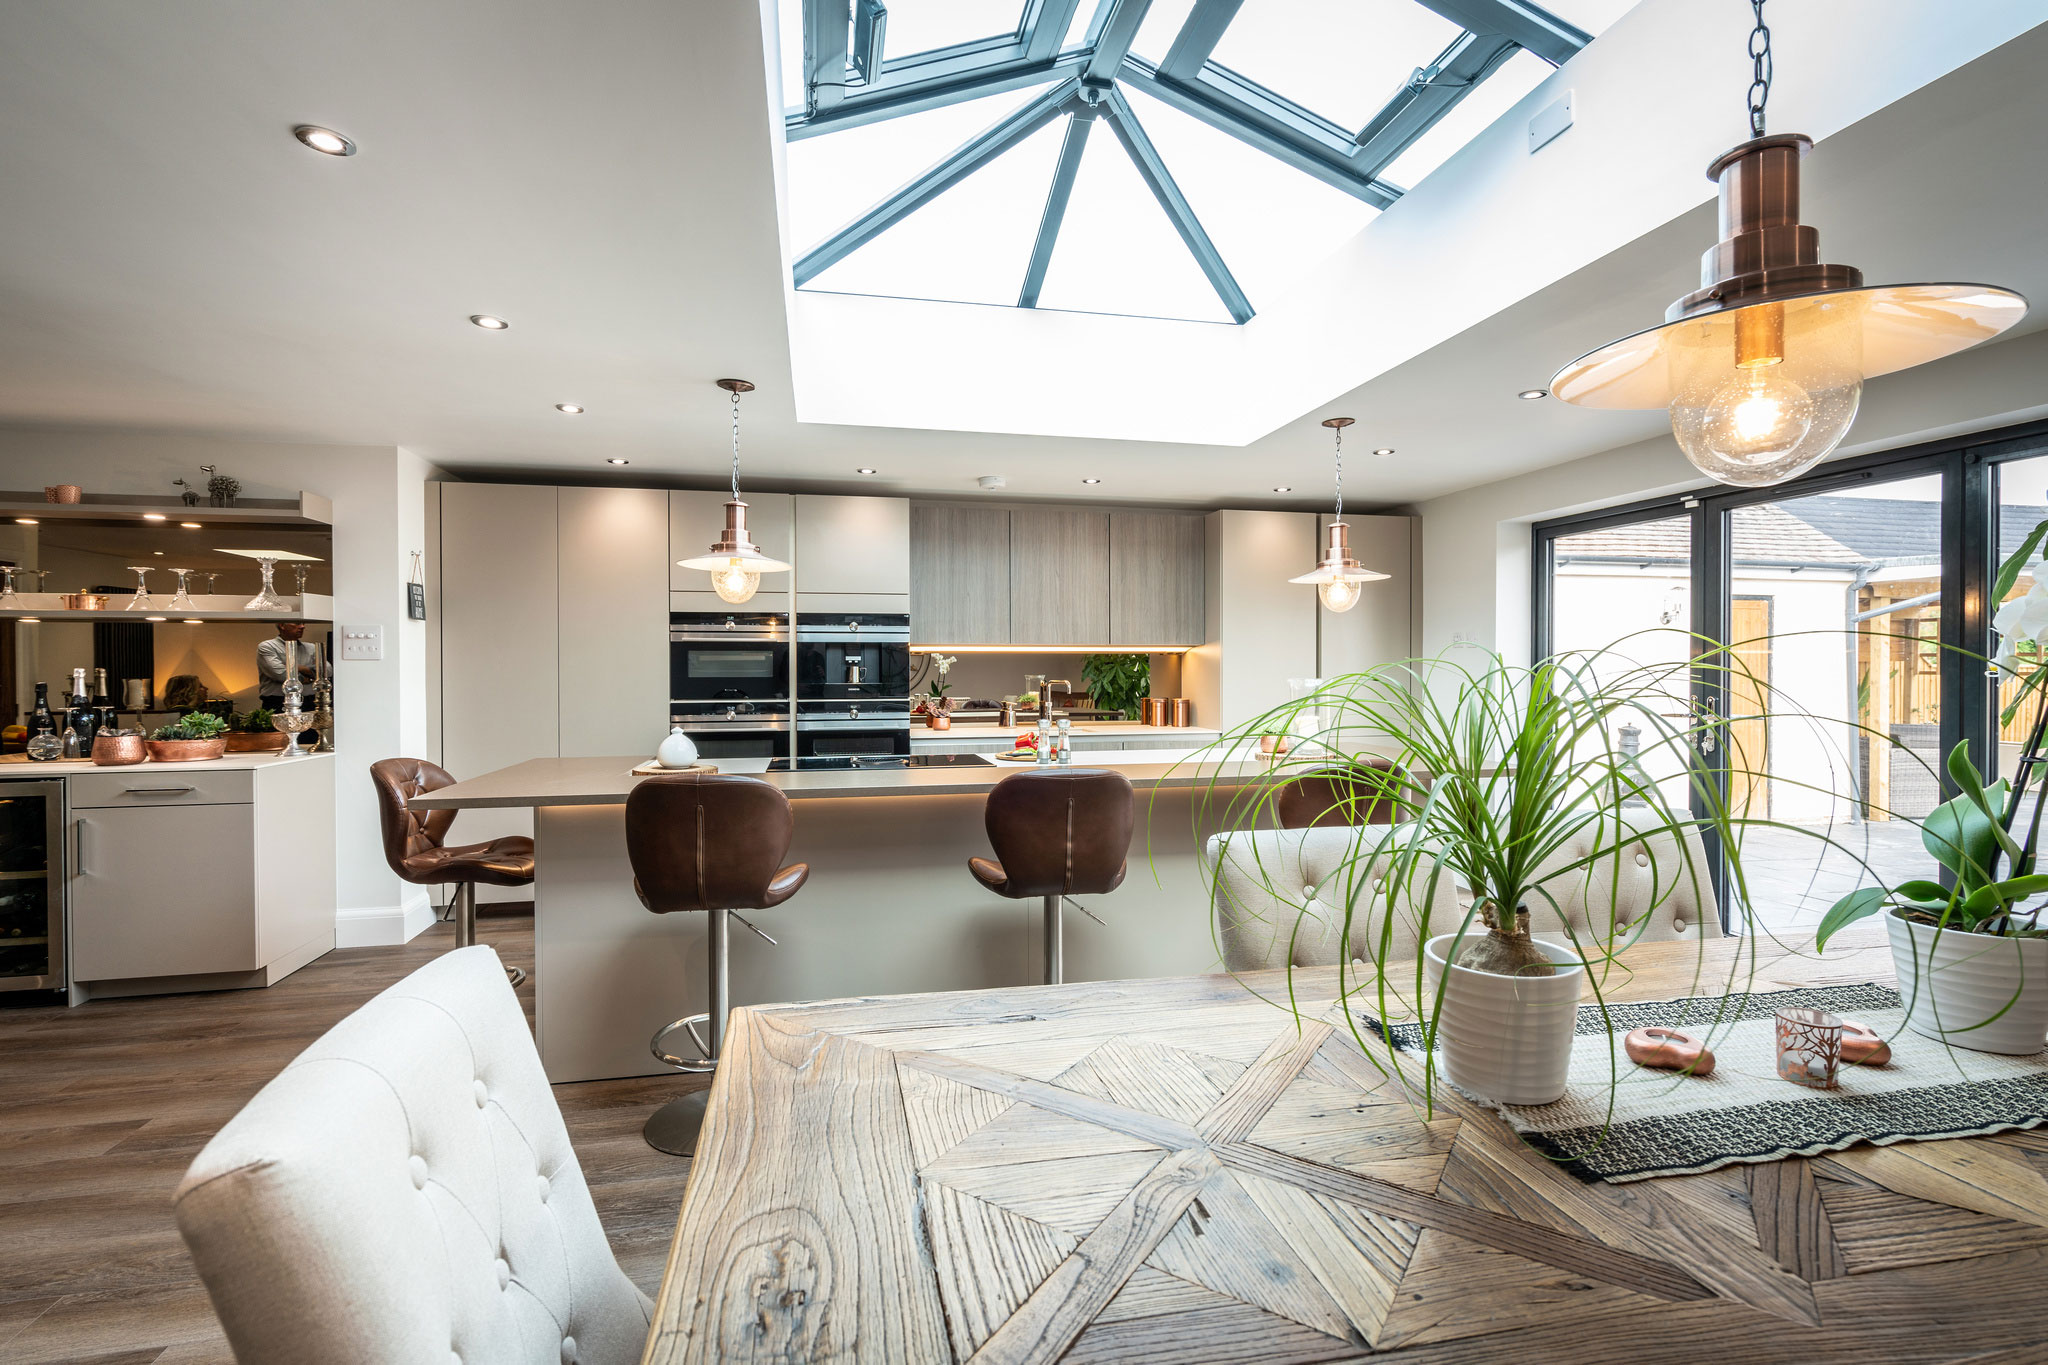 Image of Myers Touch Daniels Kitchen 01020 ZF 2442 14358 1 030 in A space designed for socialising - Cosentino